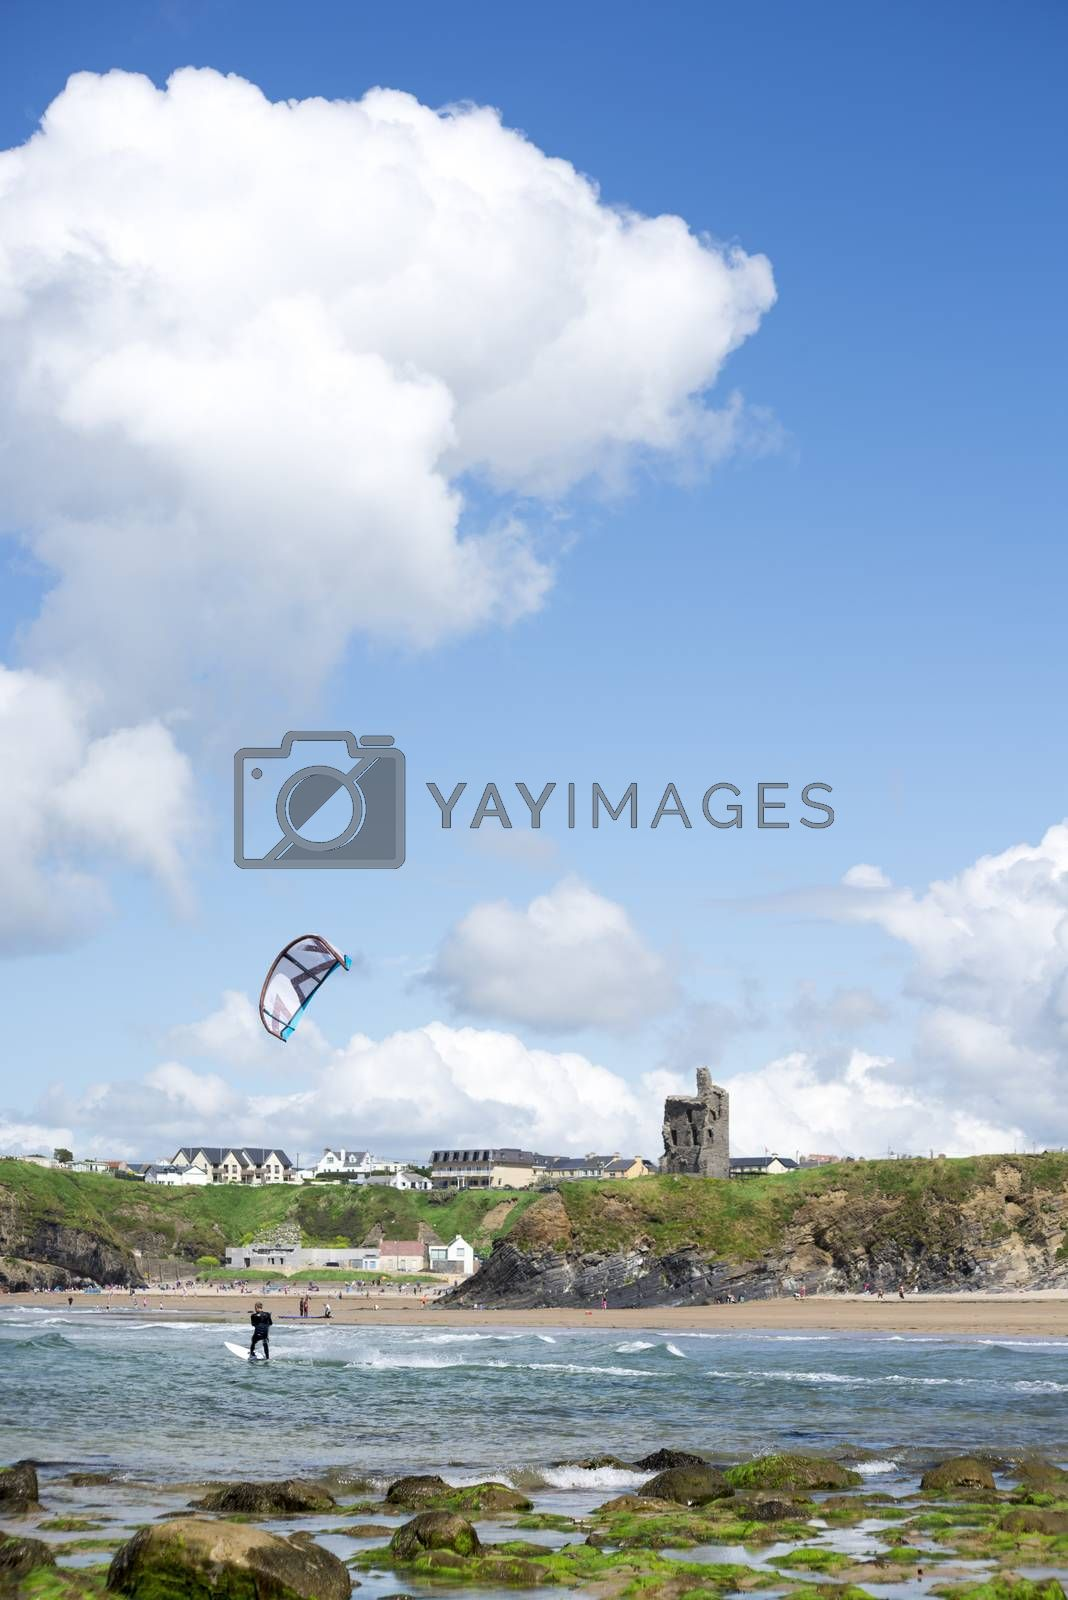 lone kite surfer riding with the waves at ballybunion beach on the wild atlantic way